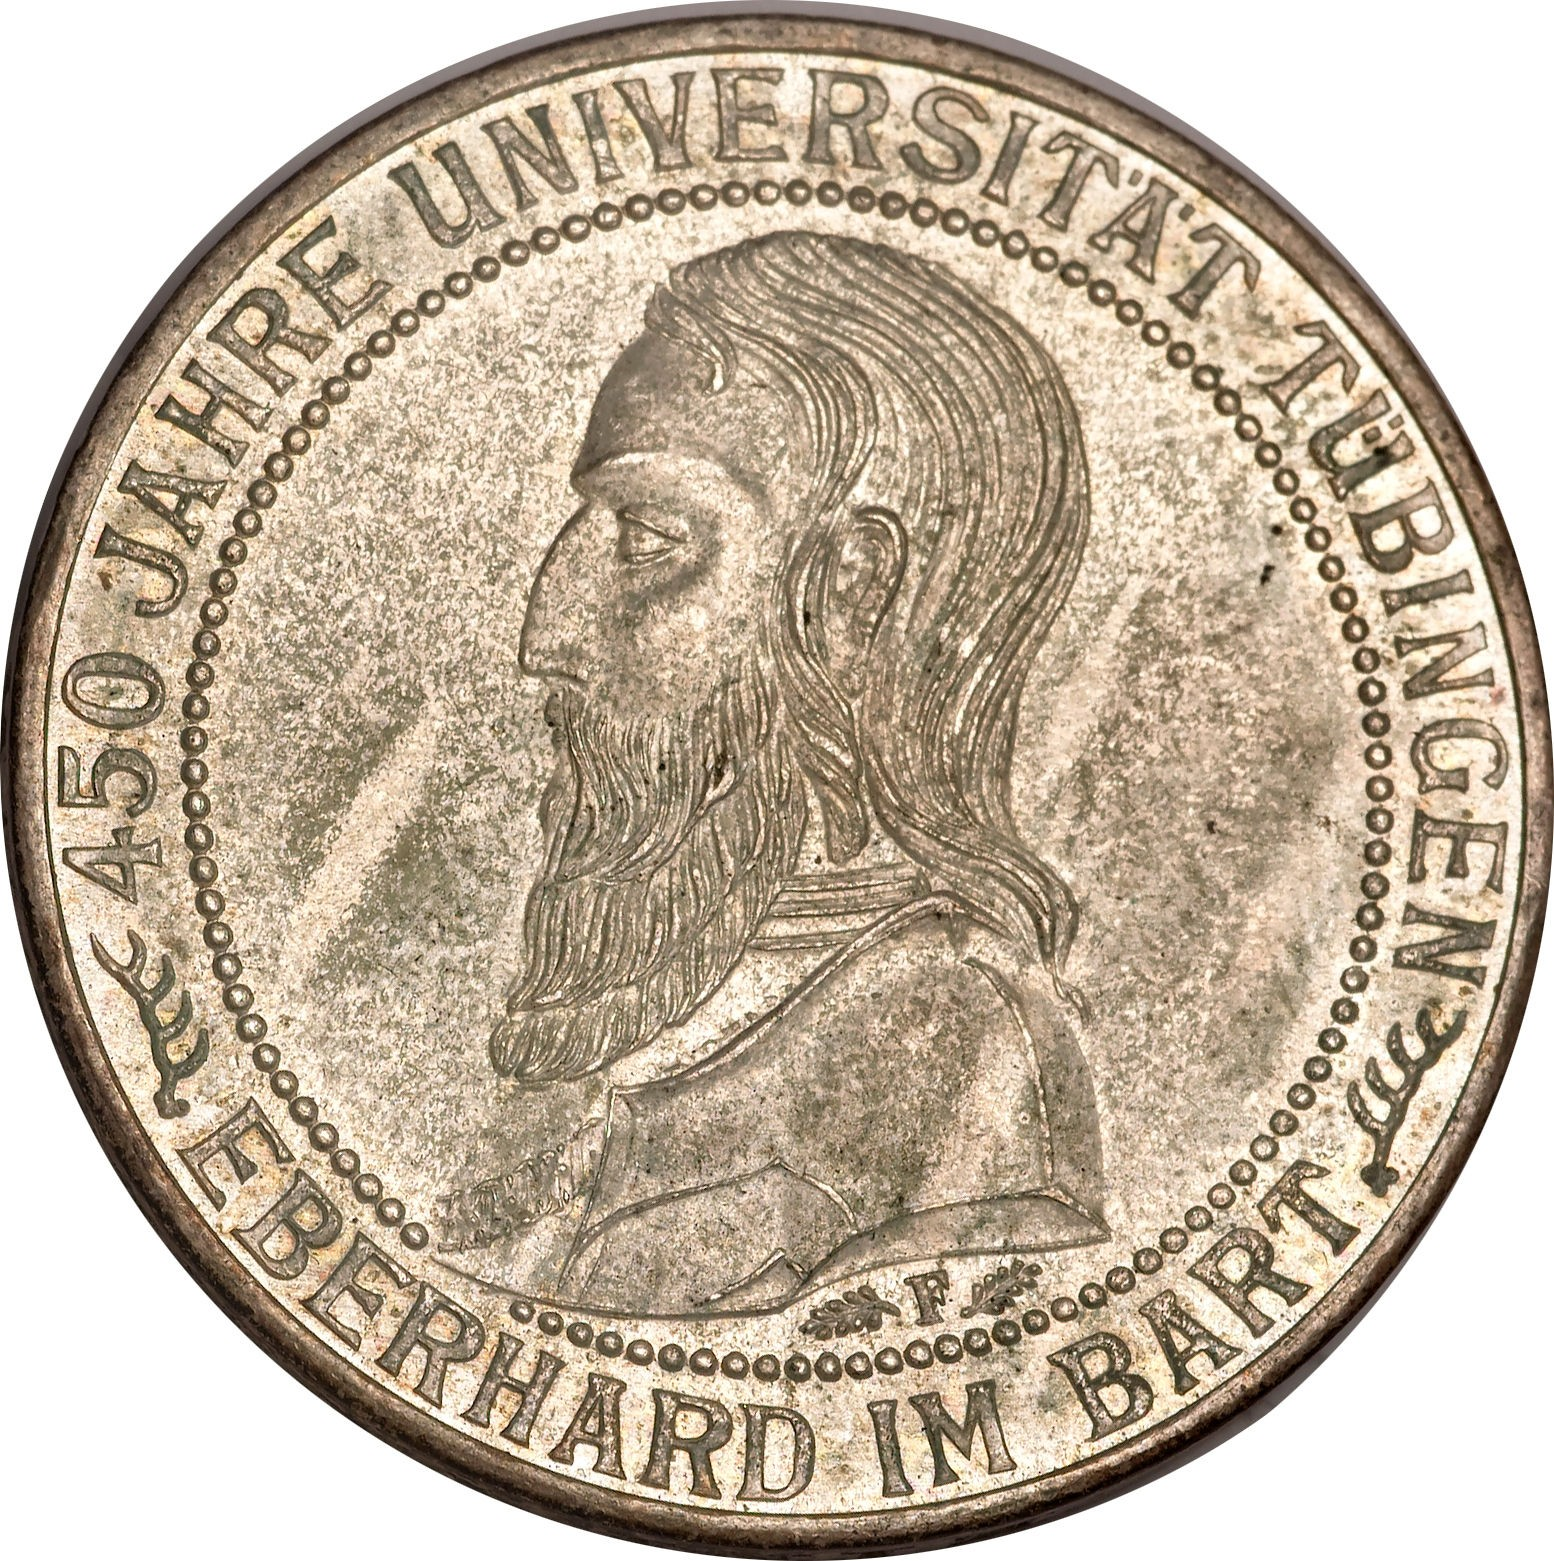 Germany 3 Reichsmark (1927 Tubingen University)